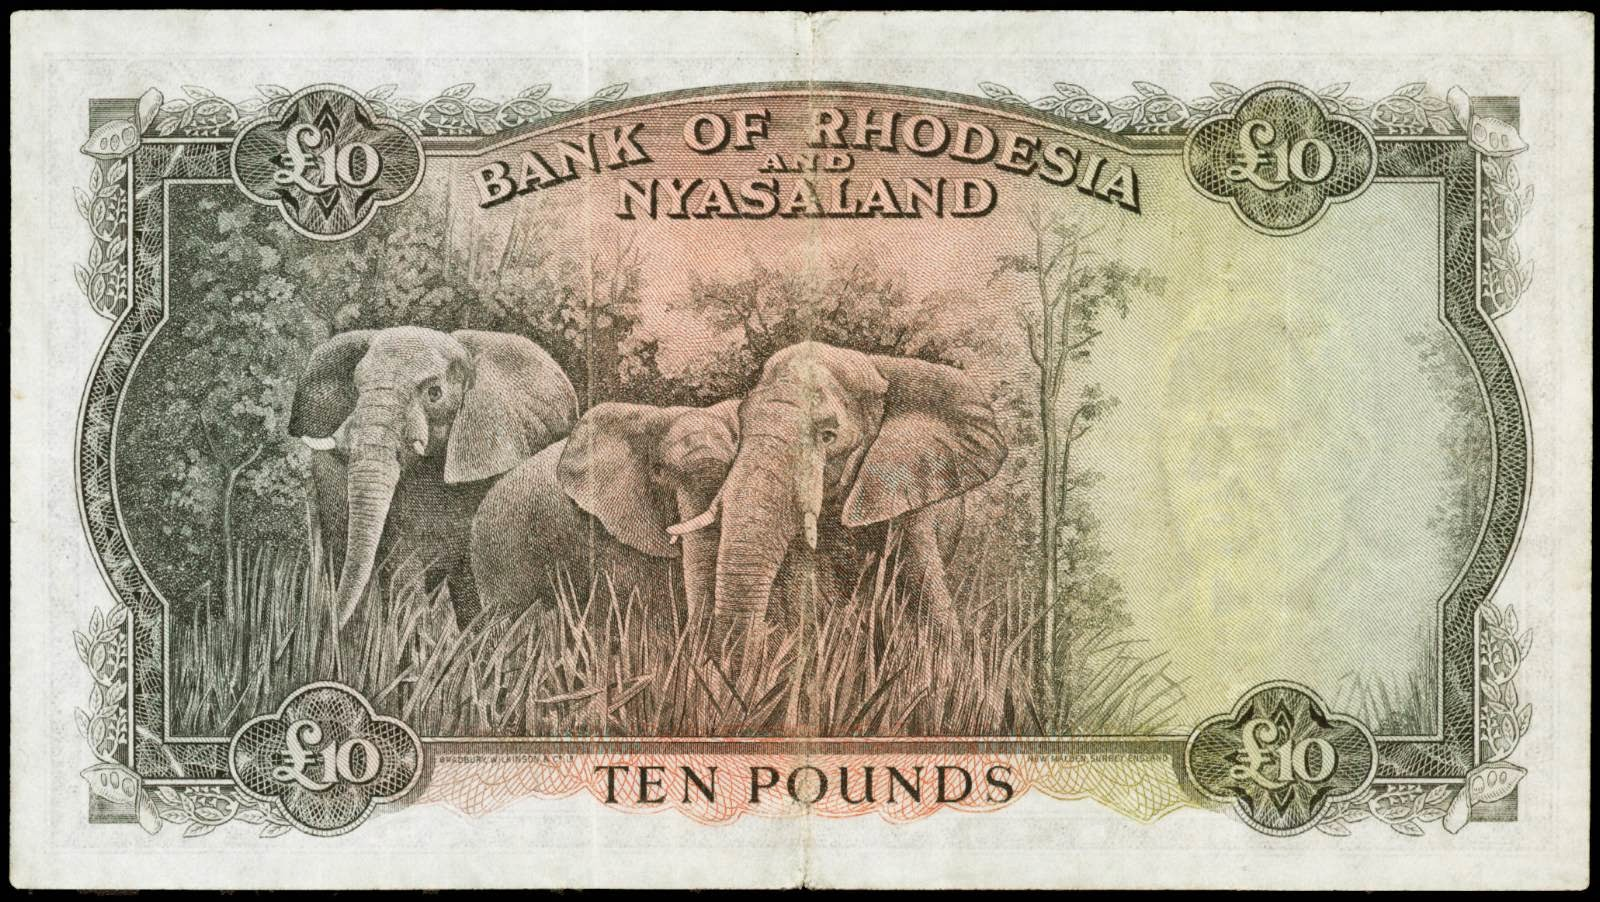 Rhodesia and Nyasaland banknotes 10 Pounds note 1960 Elephants